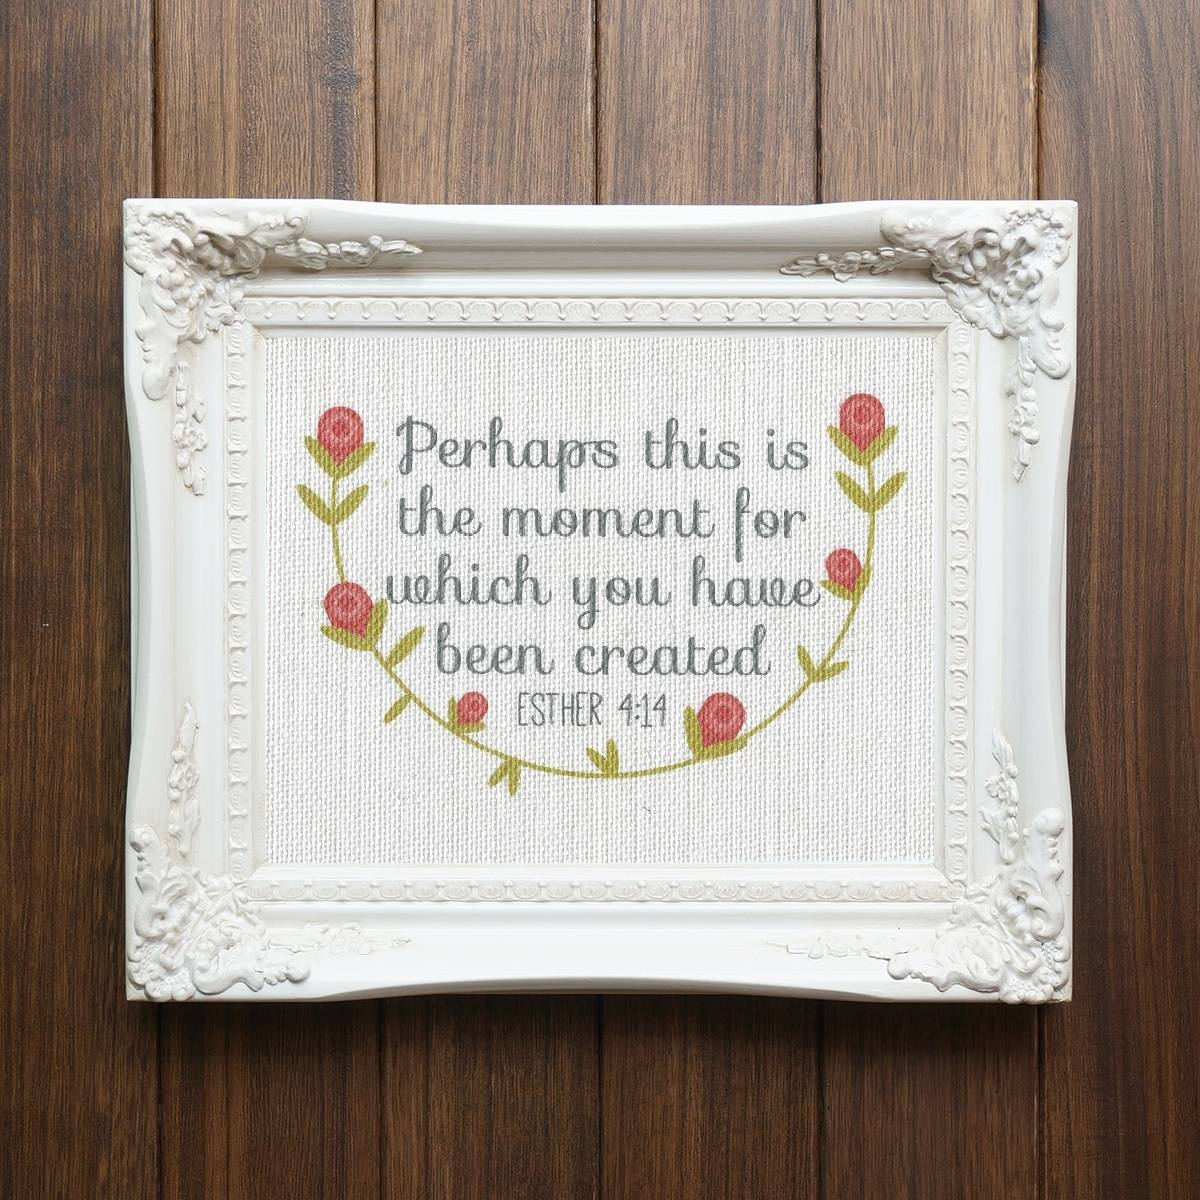 Cate Crafts – Beautiful Burlap Decor And More! With Current Bible Verses Framed Art (View 8 of 25)